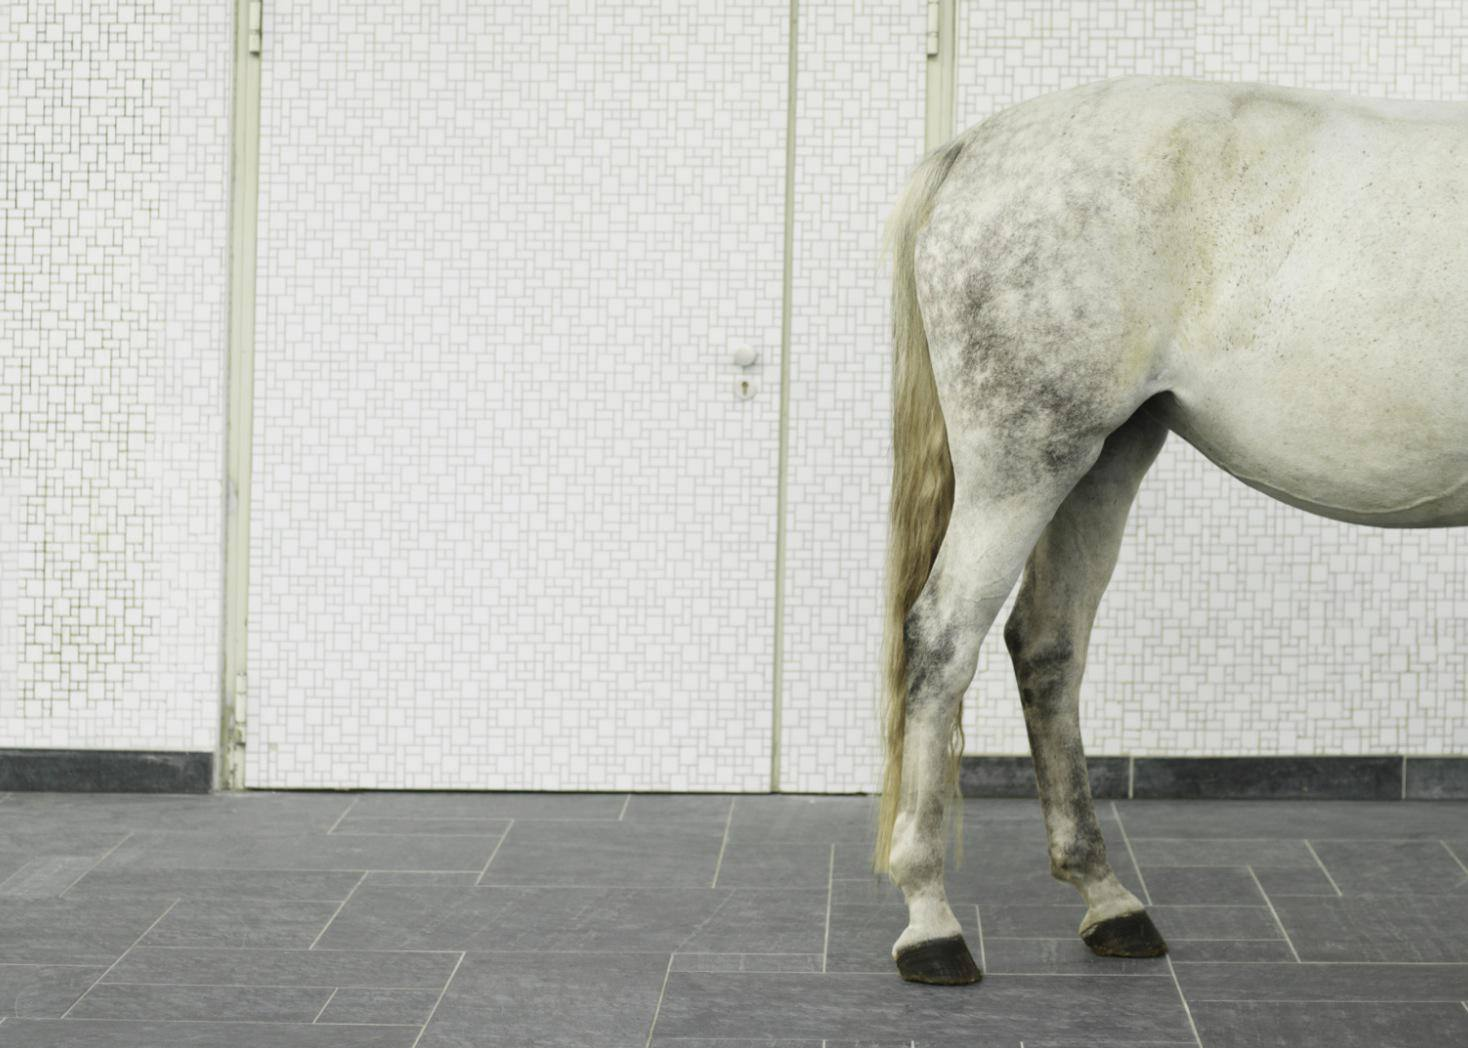 Horse standing by wall, hind quarters